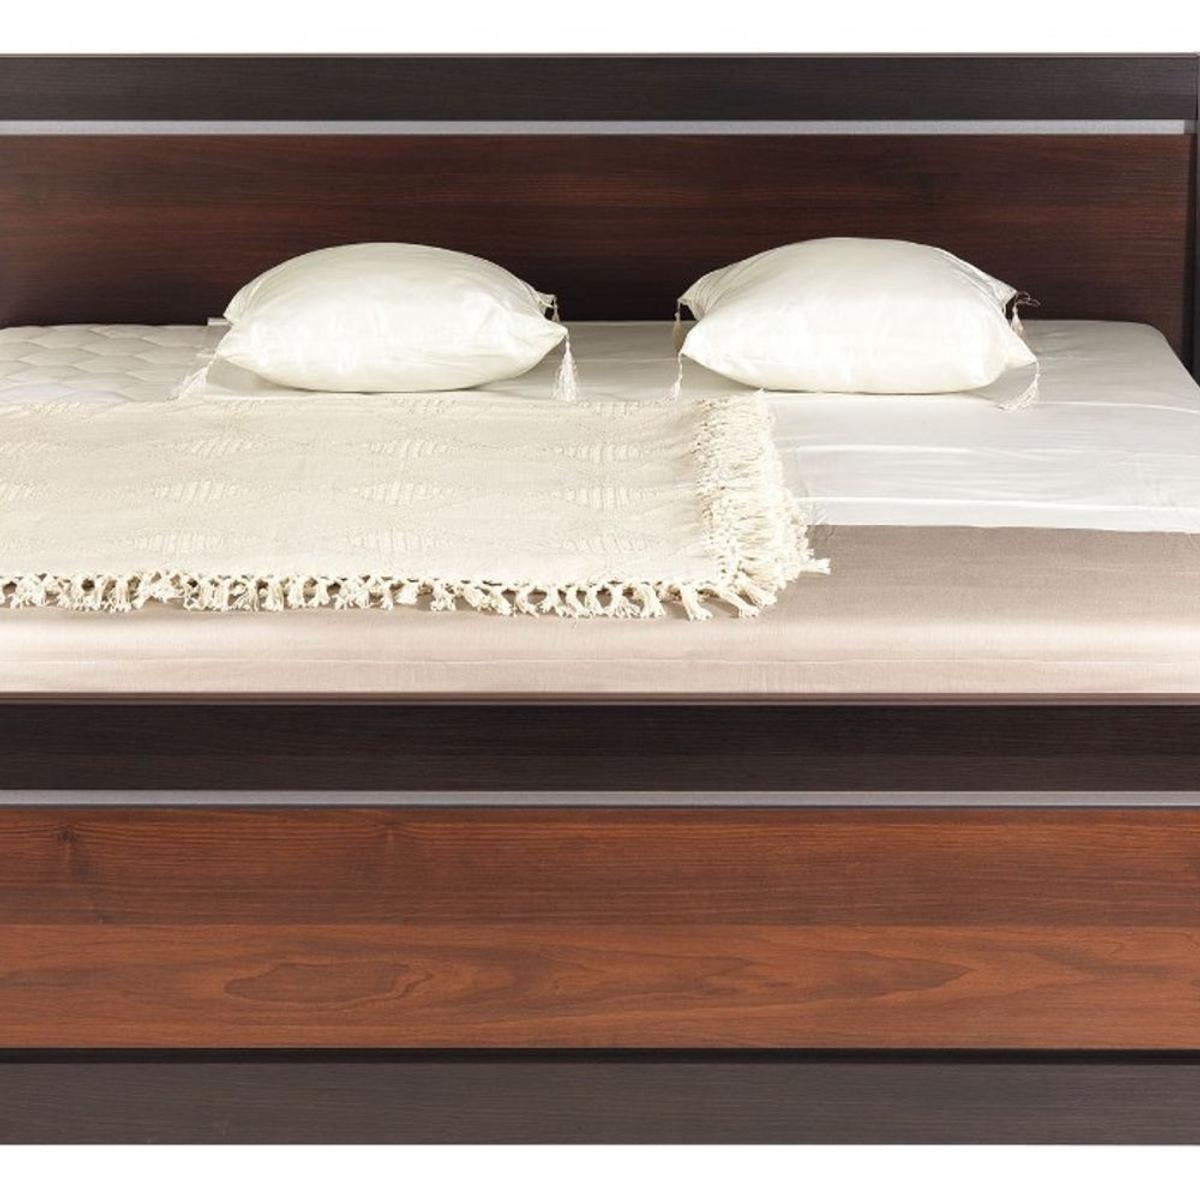 Dark walnut & milano oak colour  Width: 172.6cm  Depth: 212.7cm  Height: 90cm  THE PRICE DOES NOT INCLUDE MATTRESS !!!